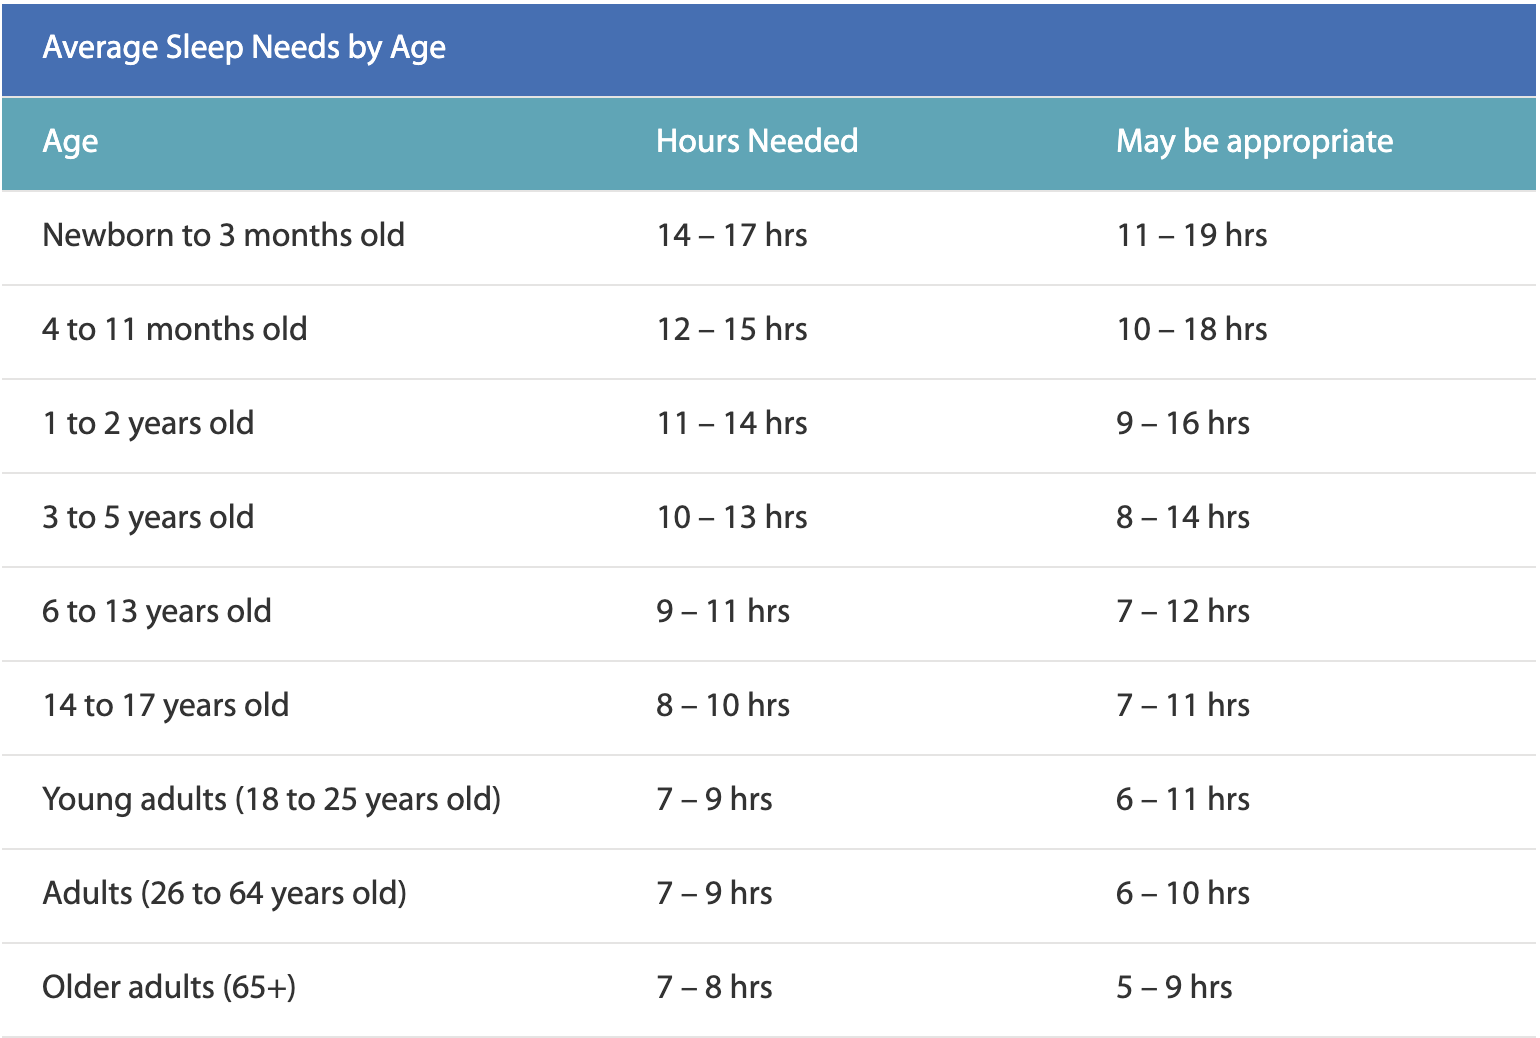 Table of recommended sleep time